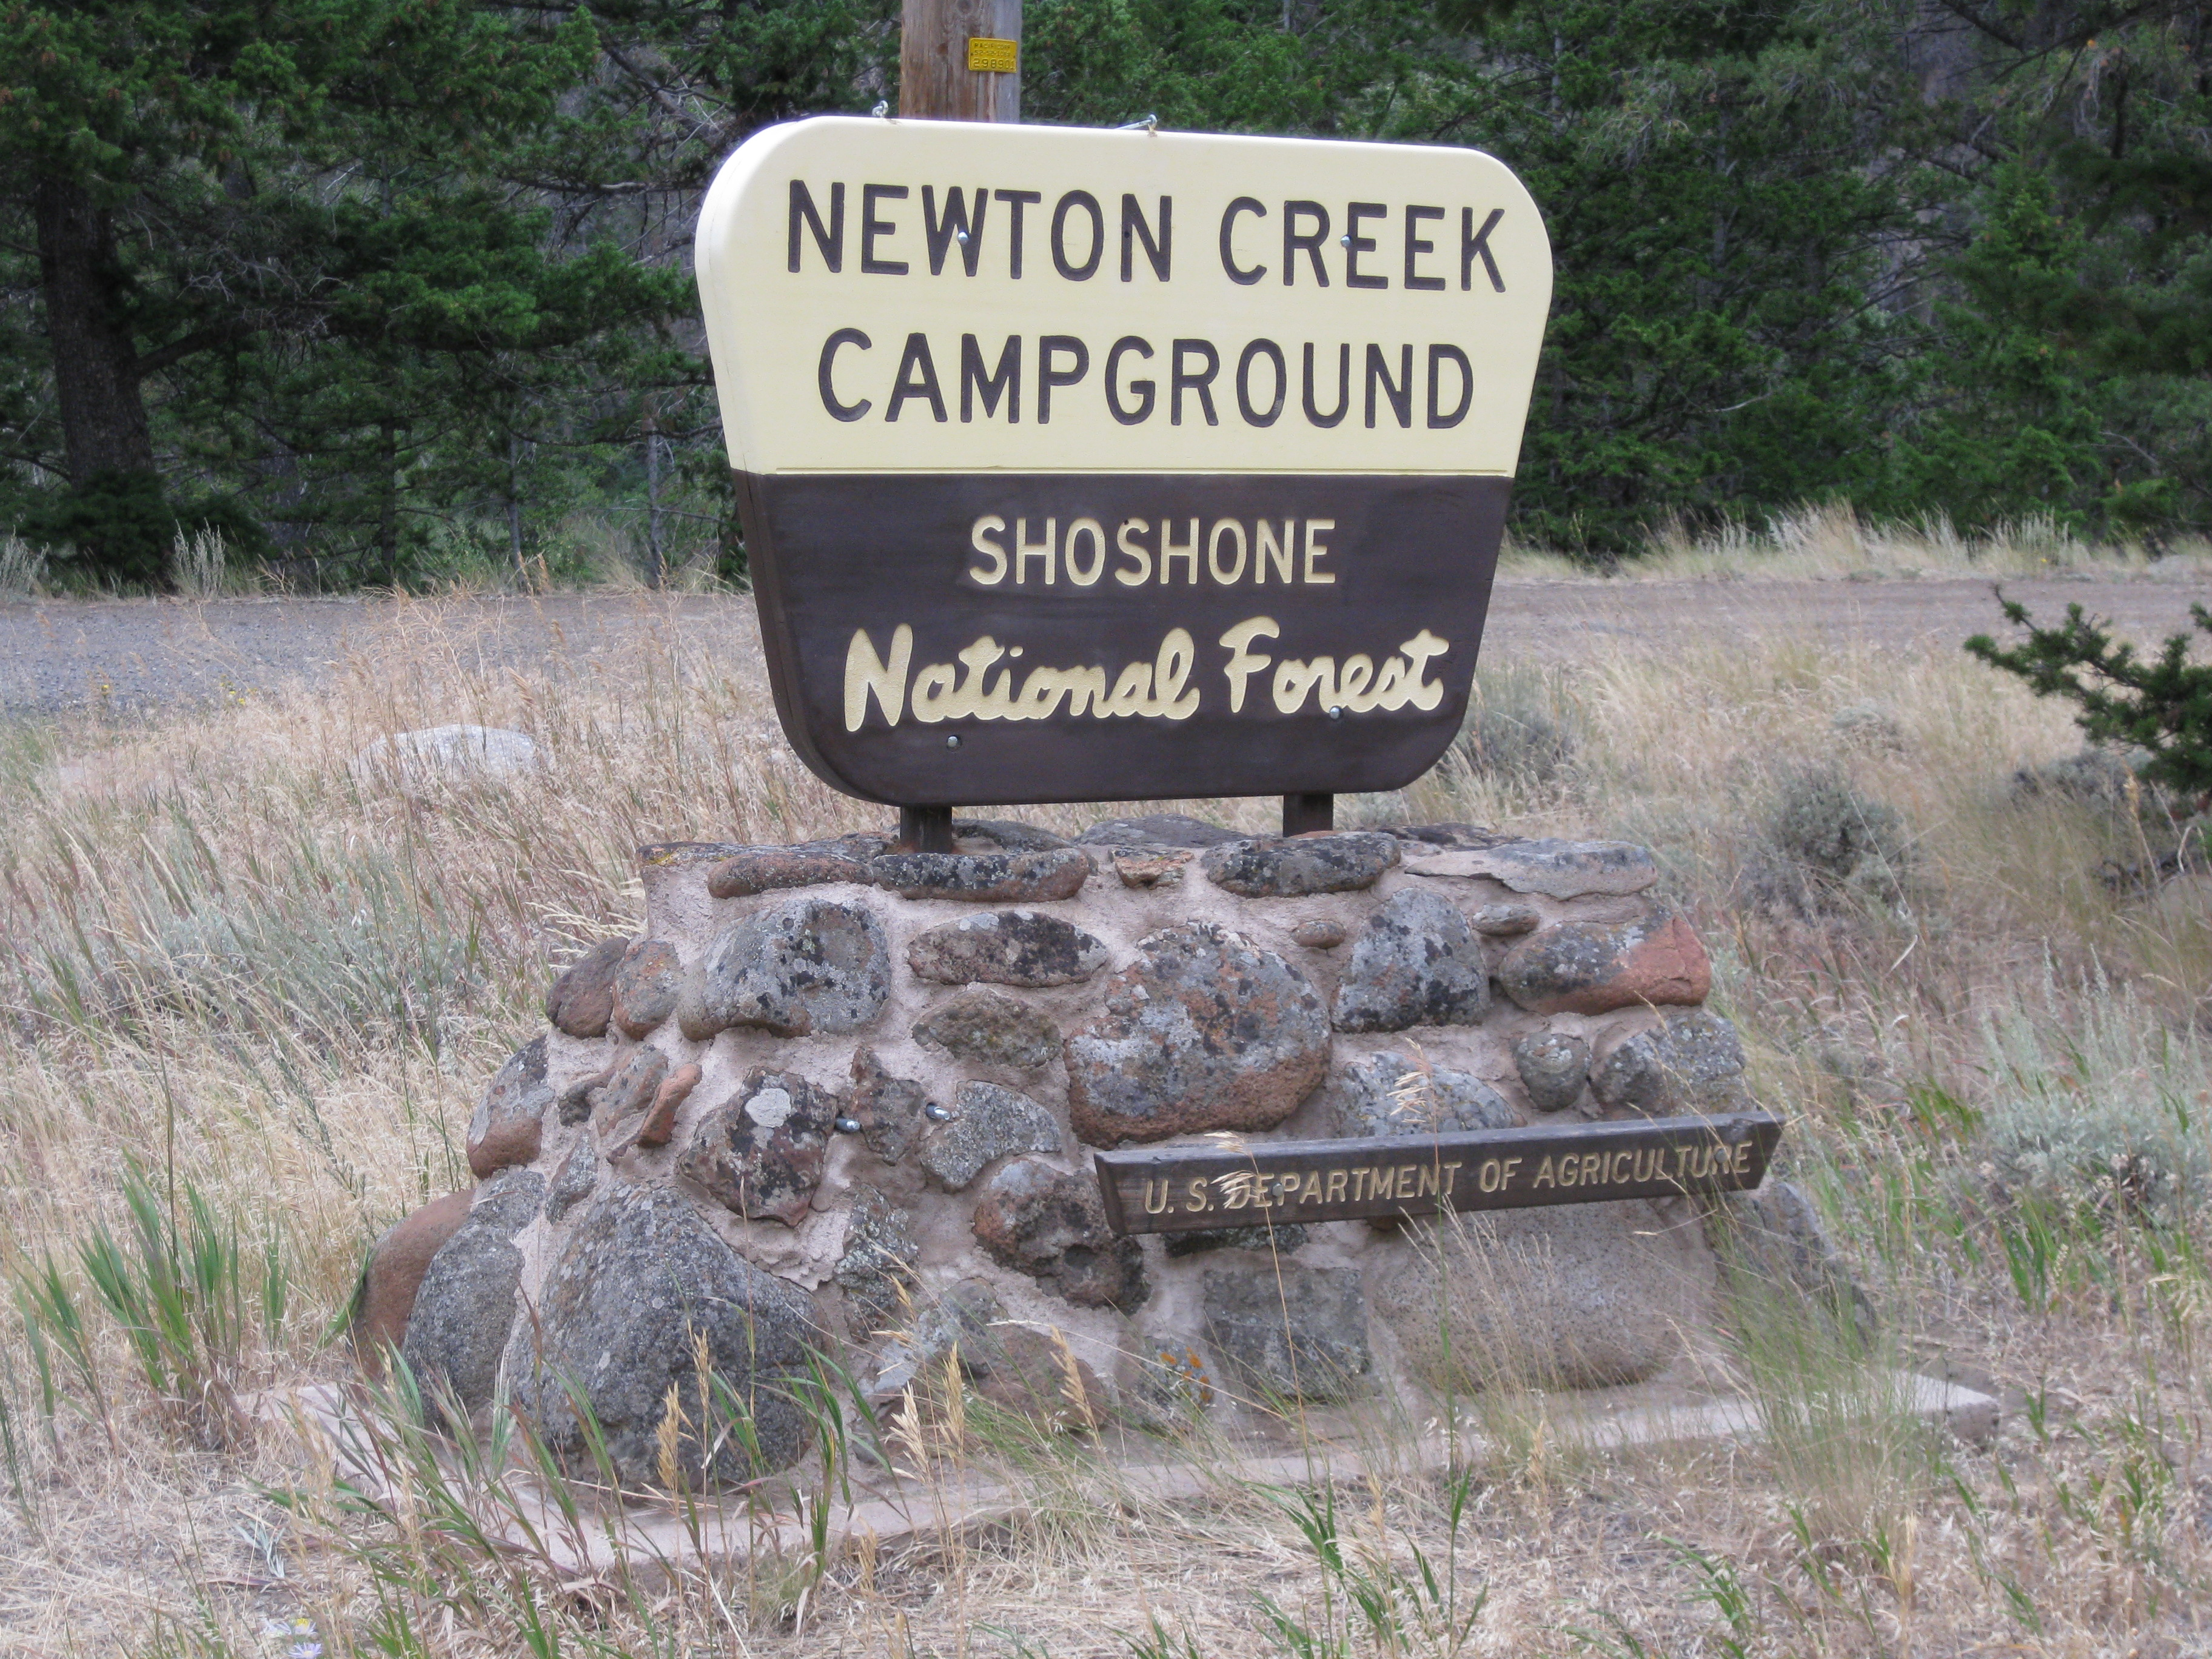 Photograph of Newton Creek Campground